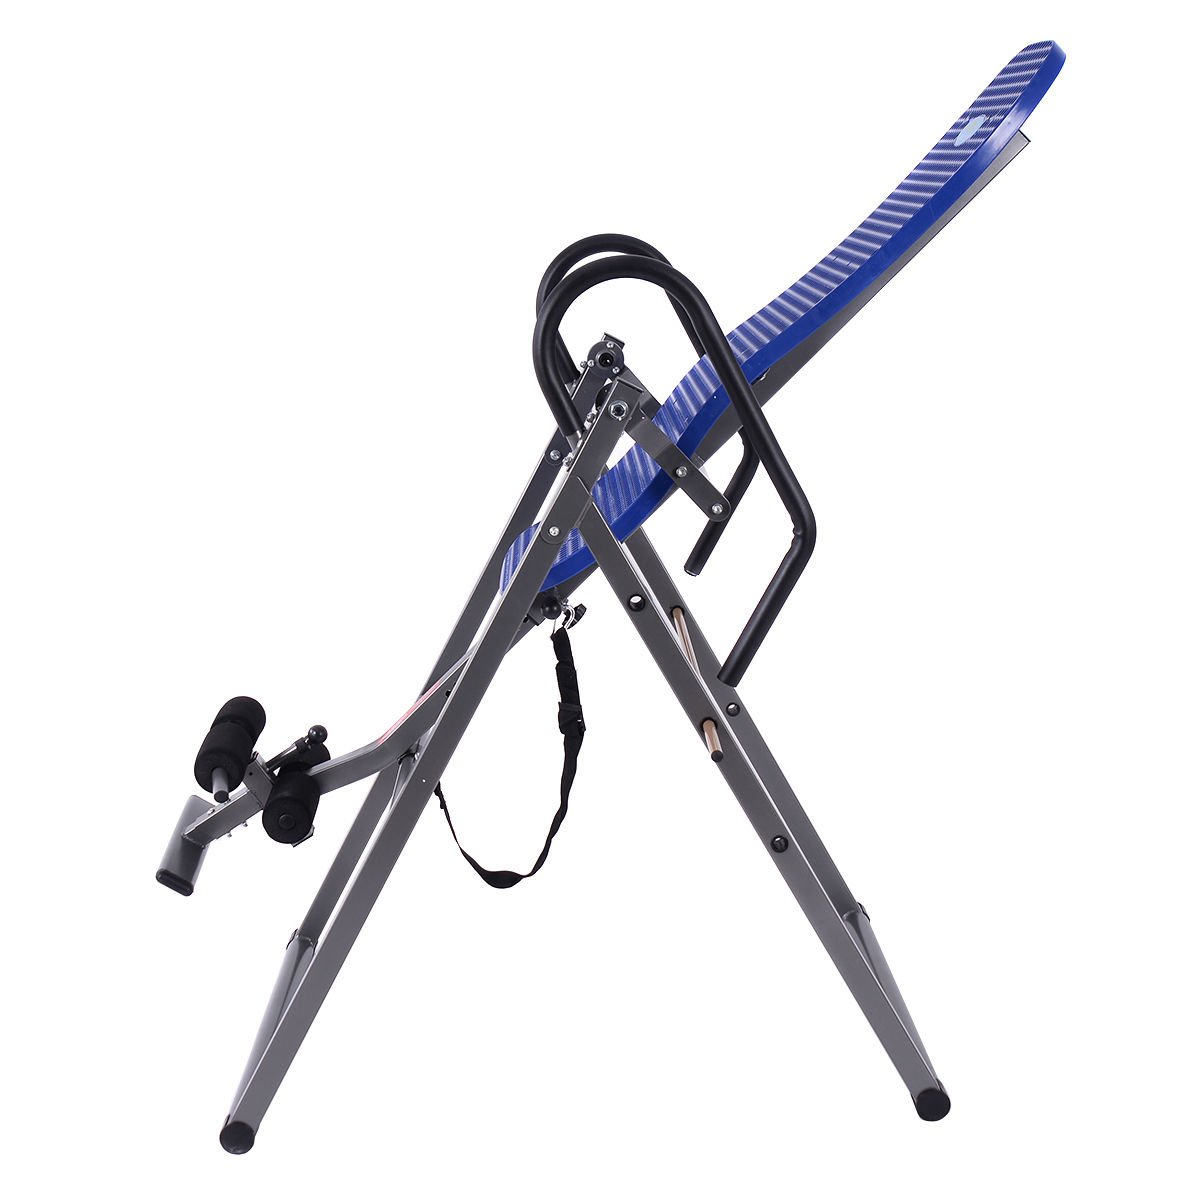 New Foldable ABS Inversion Table Gravity Therapy Back Pain Fitness Reflexology Blue by MTN Gearsmith (Image #3)